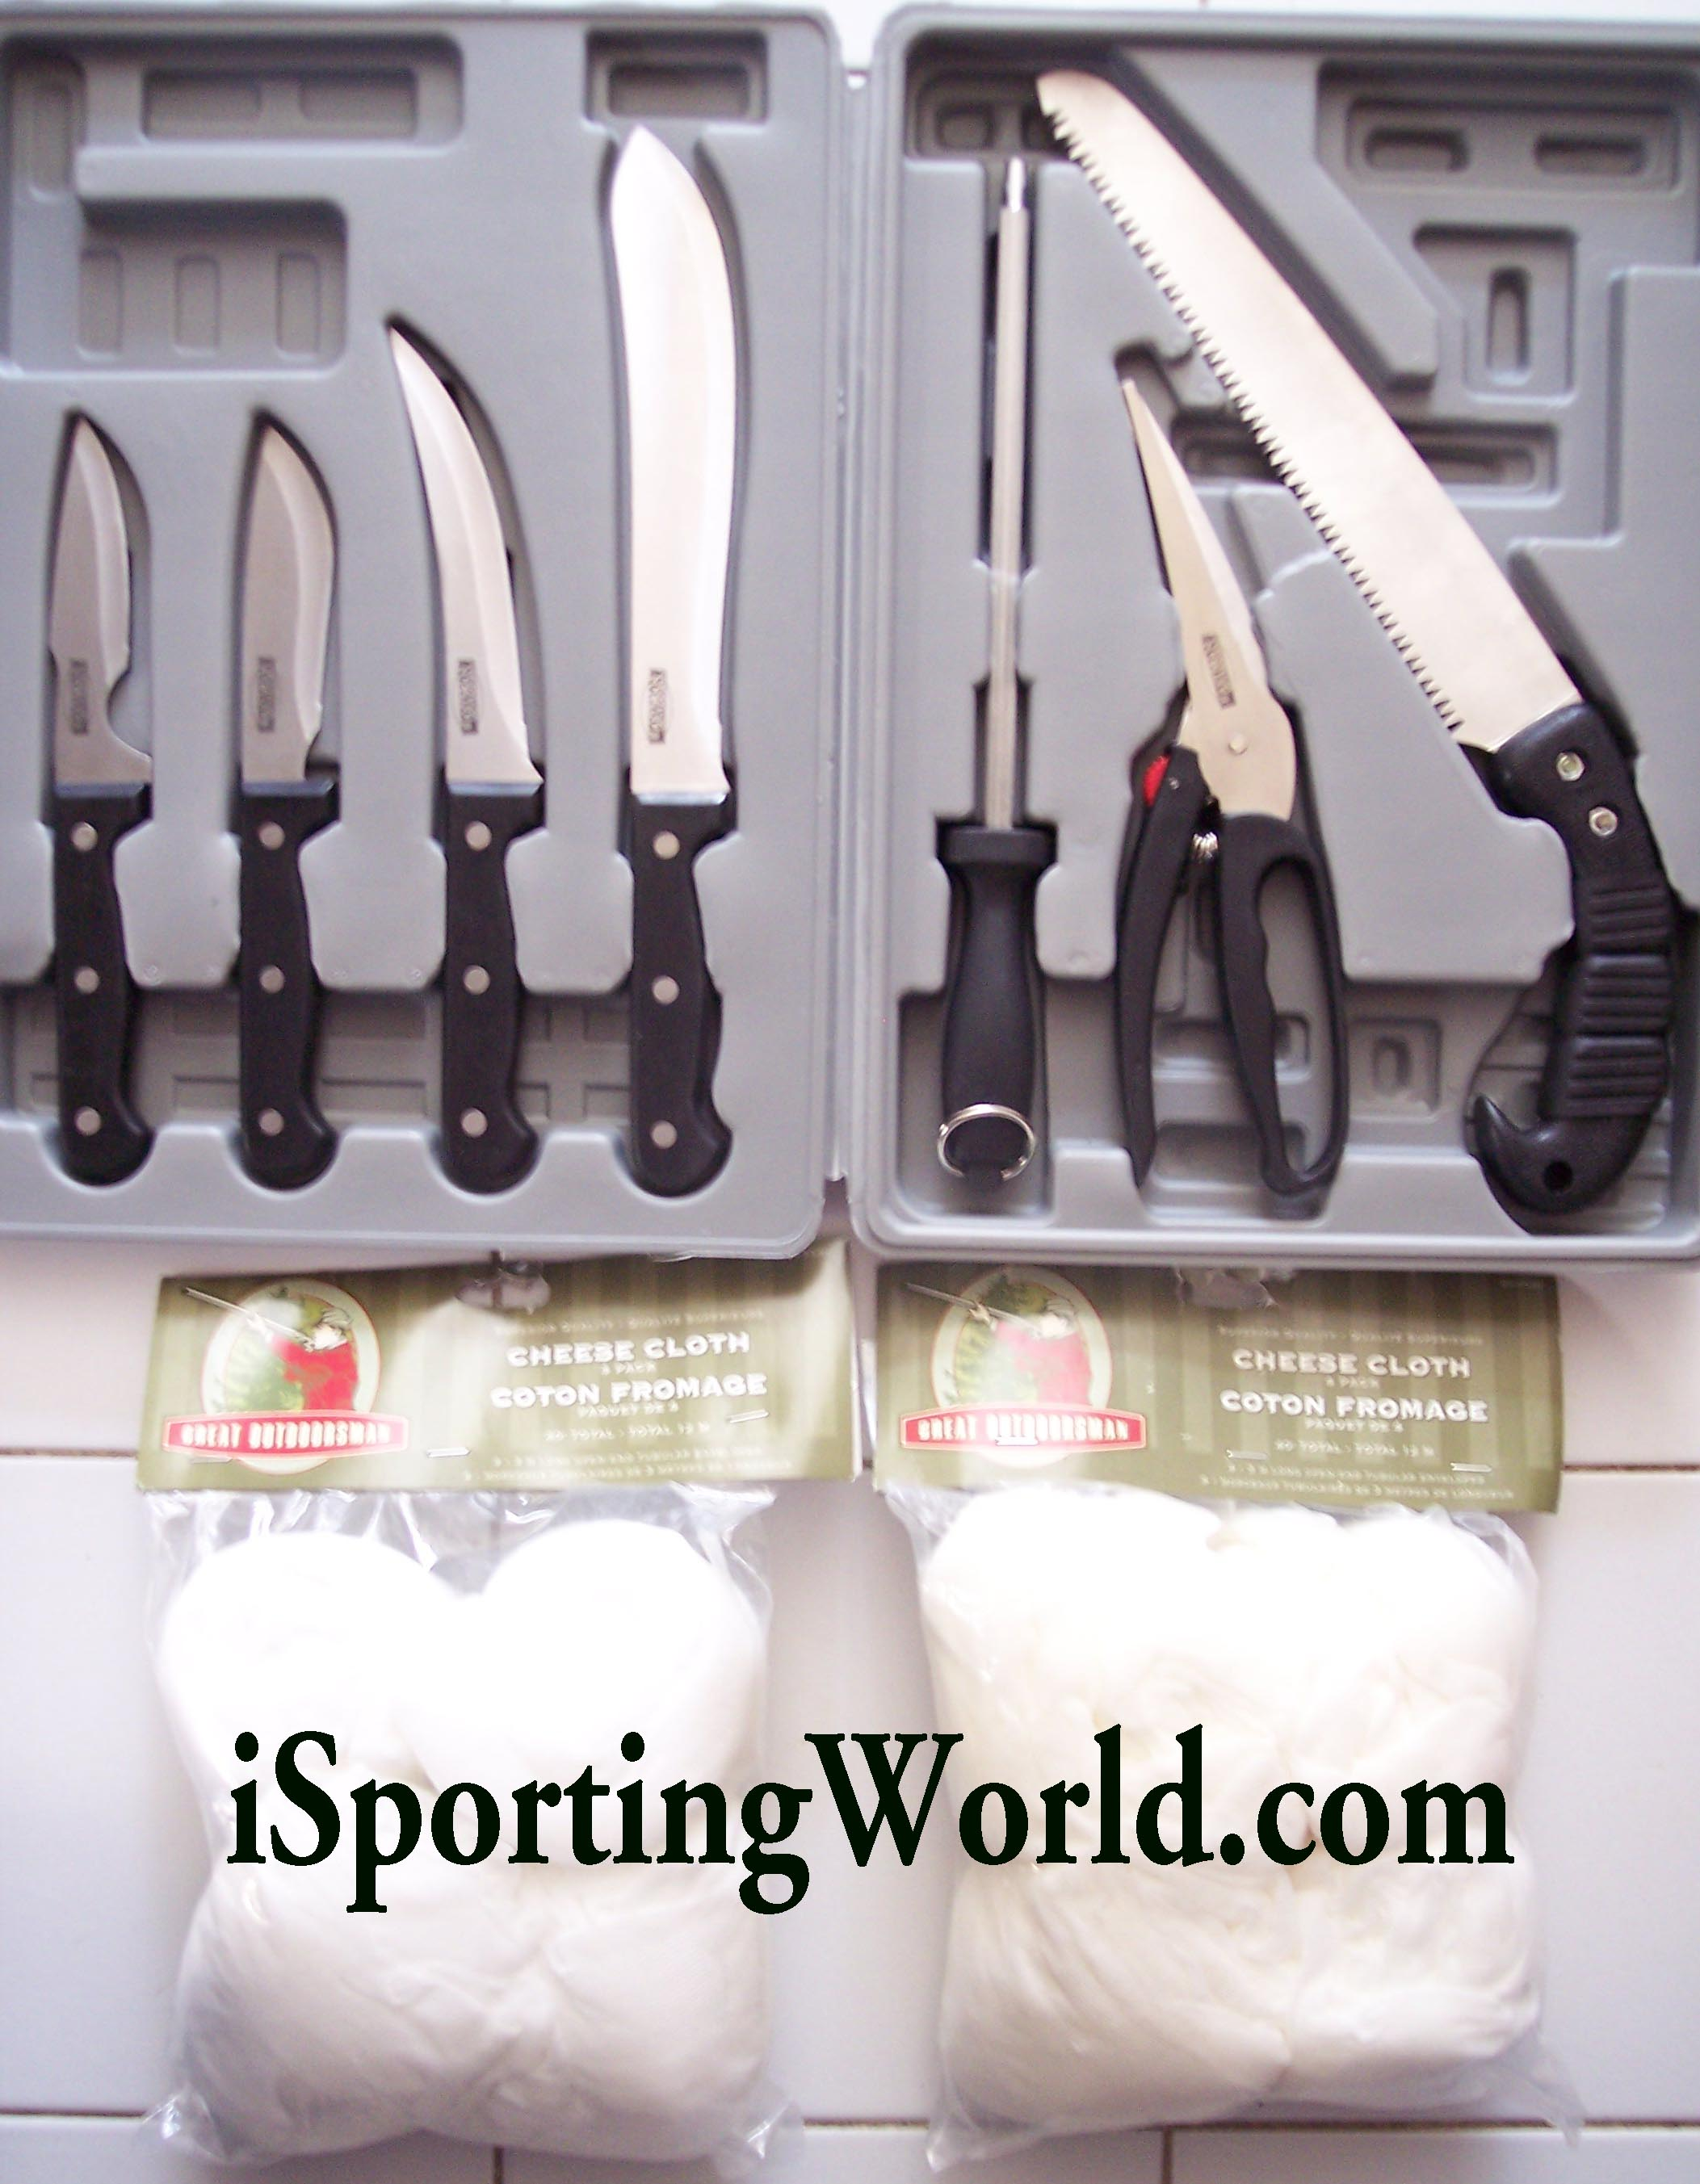 EASTMAN OUTDOORS Do-It-Yourself BUTCHER KNIFE PROCESSING KIT